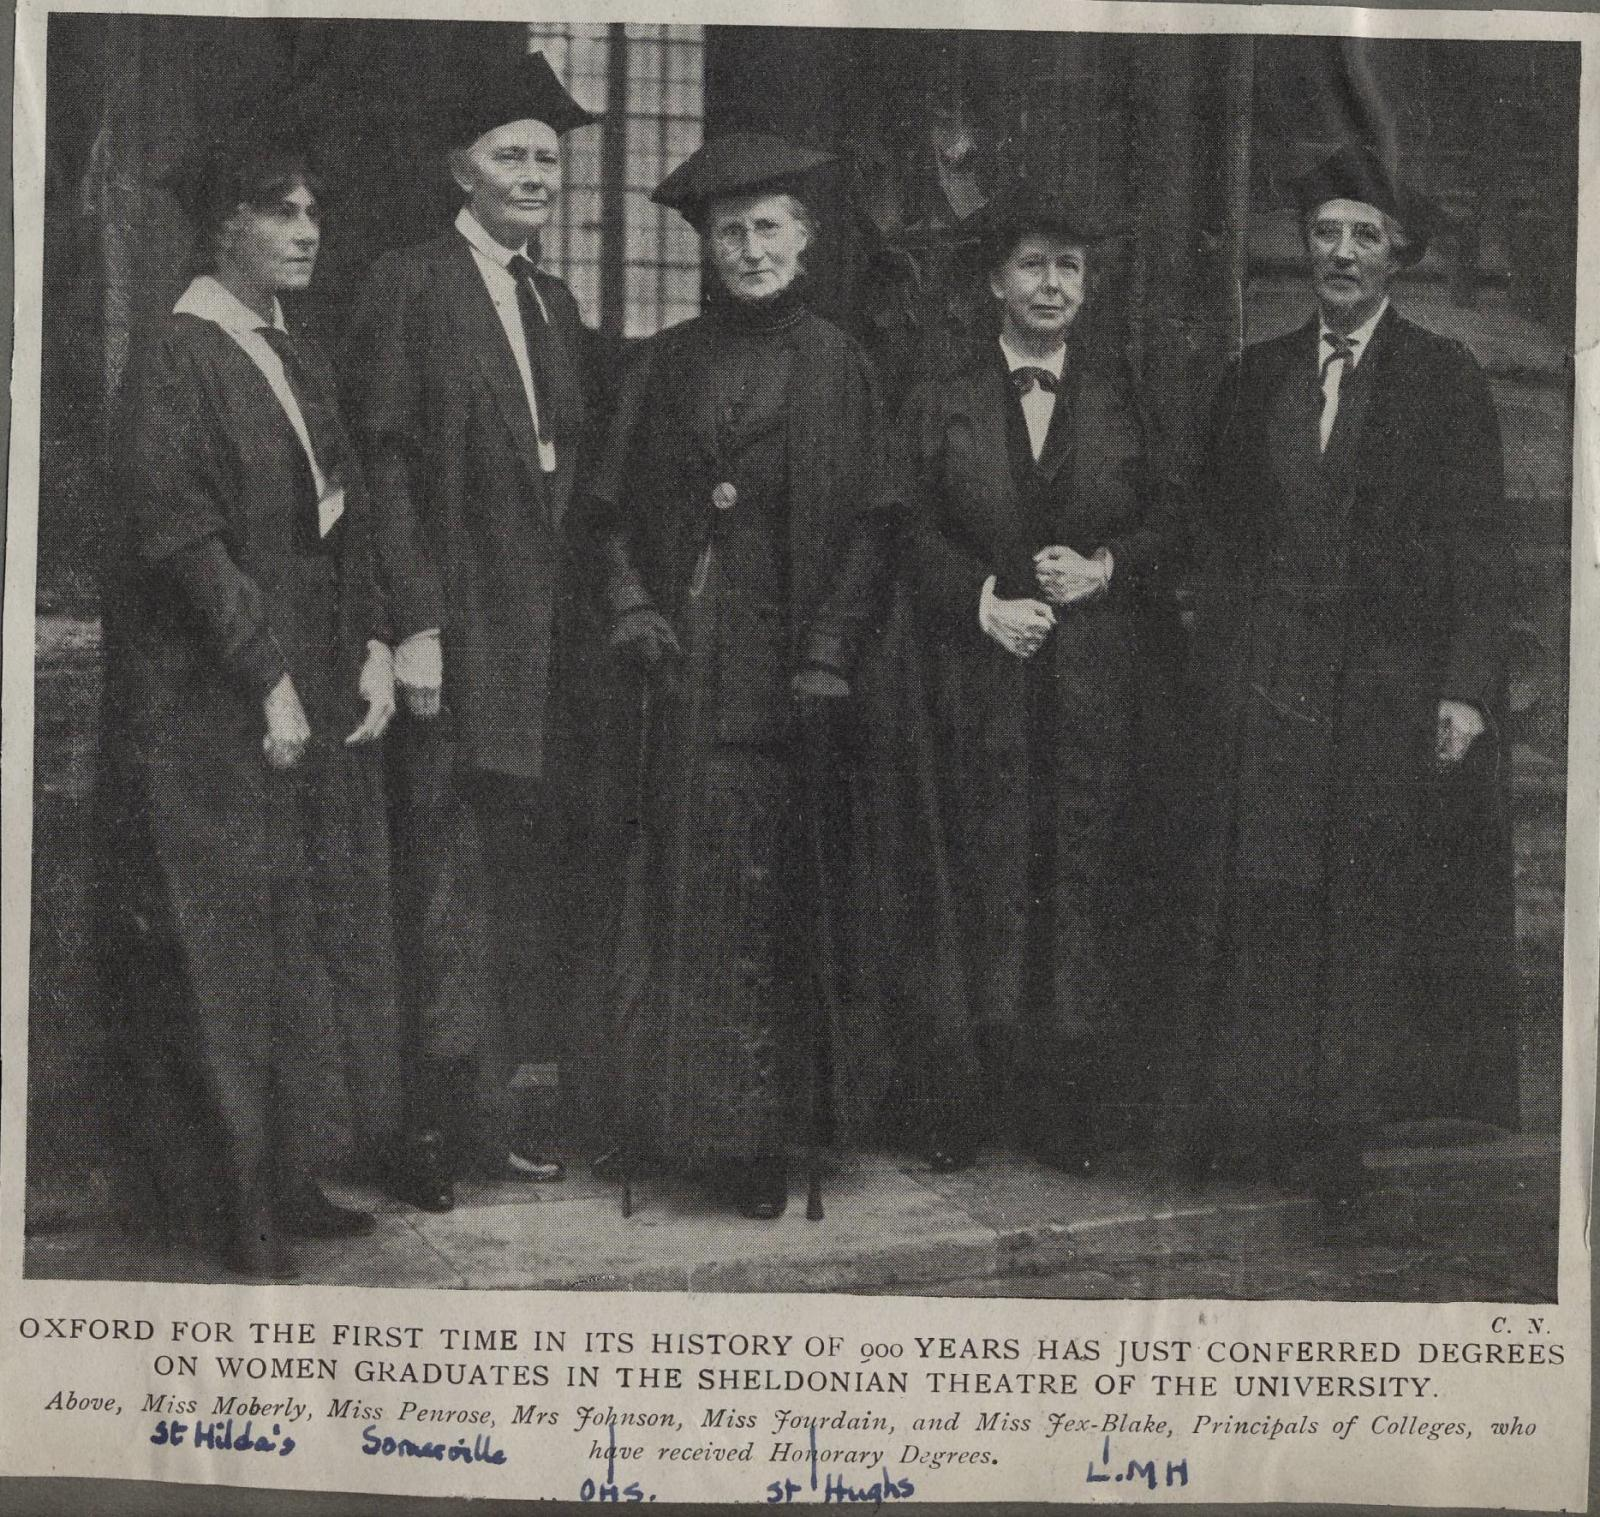 Principals of the Women's Hall's getting degrees in 1920